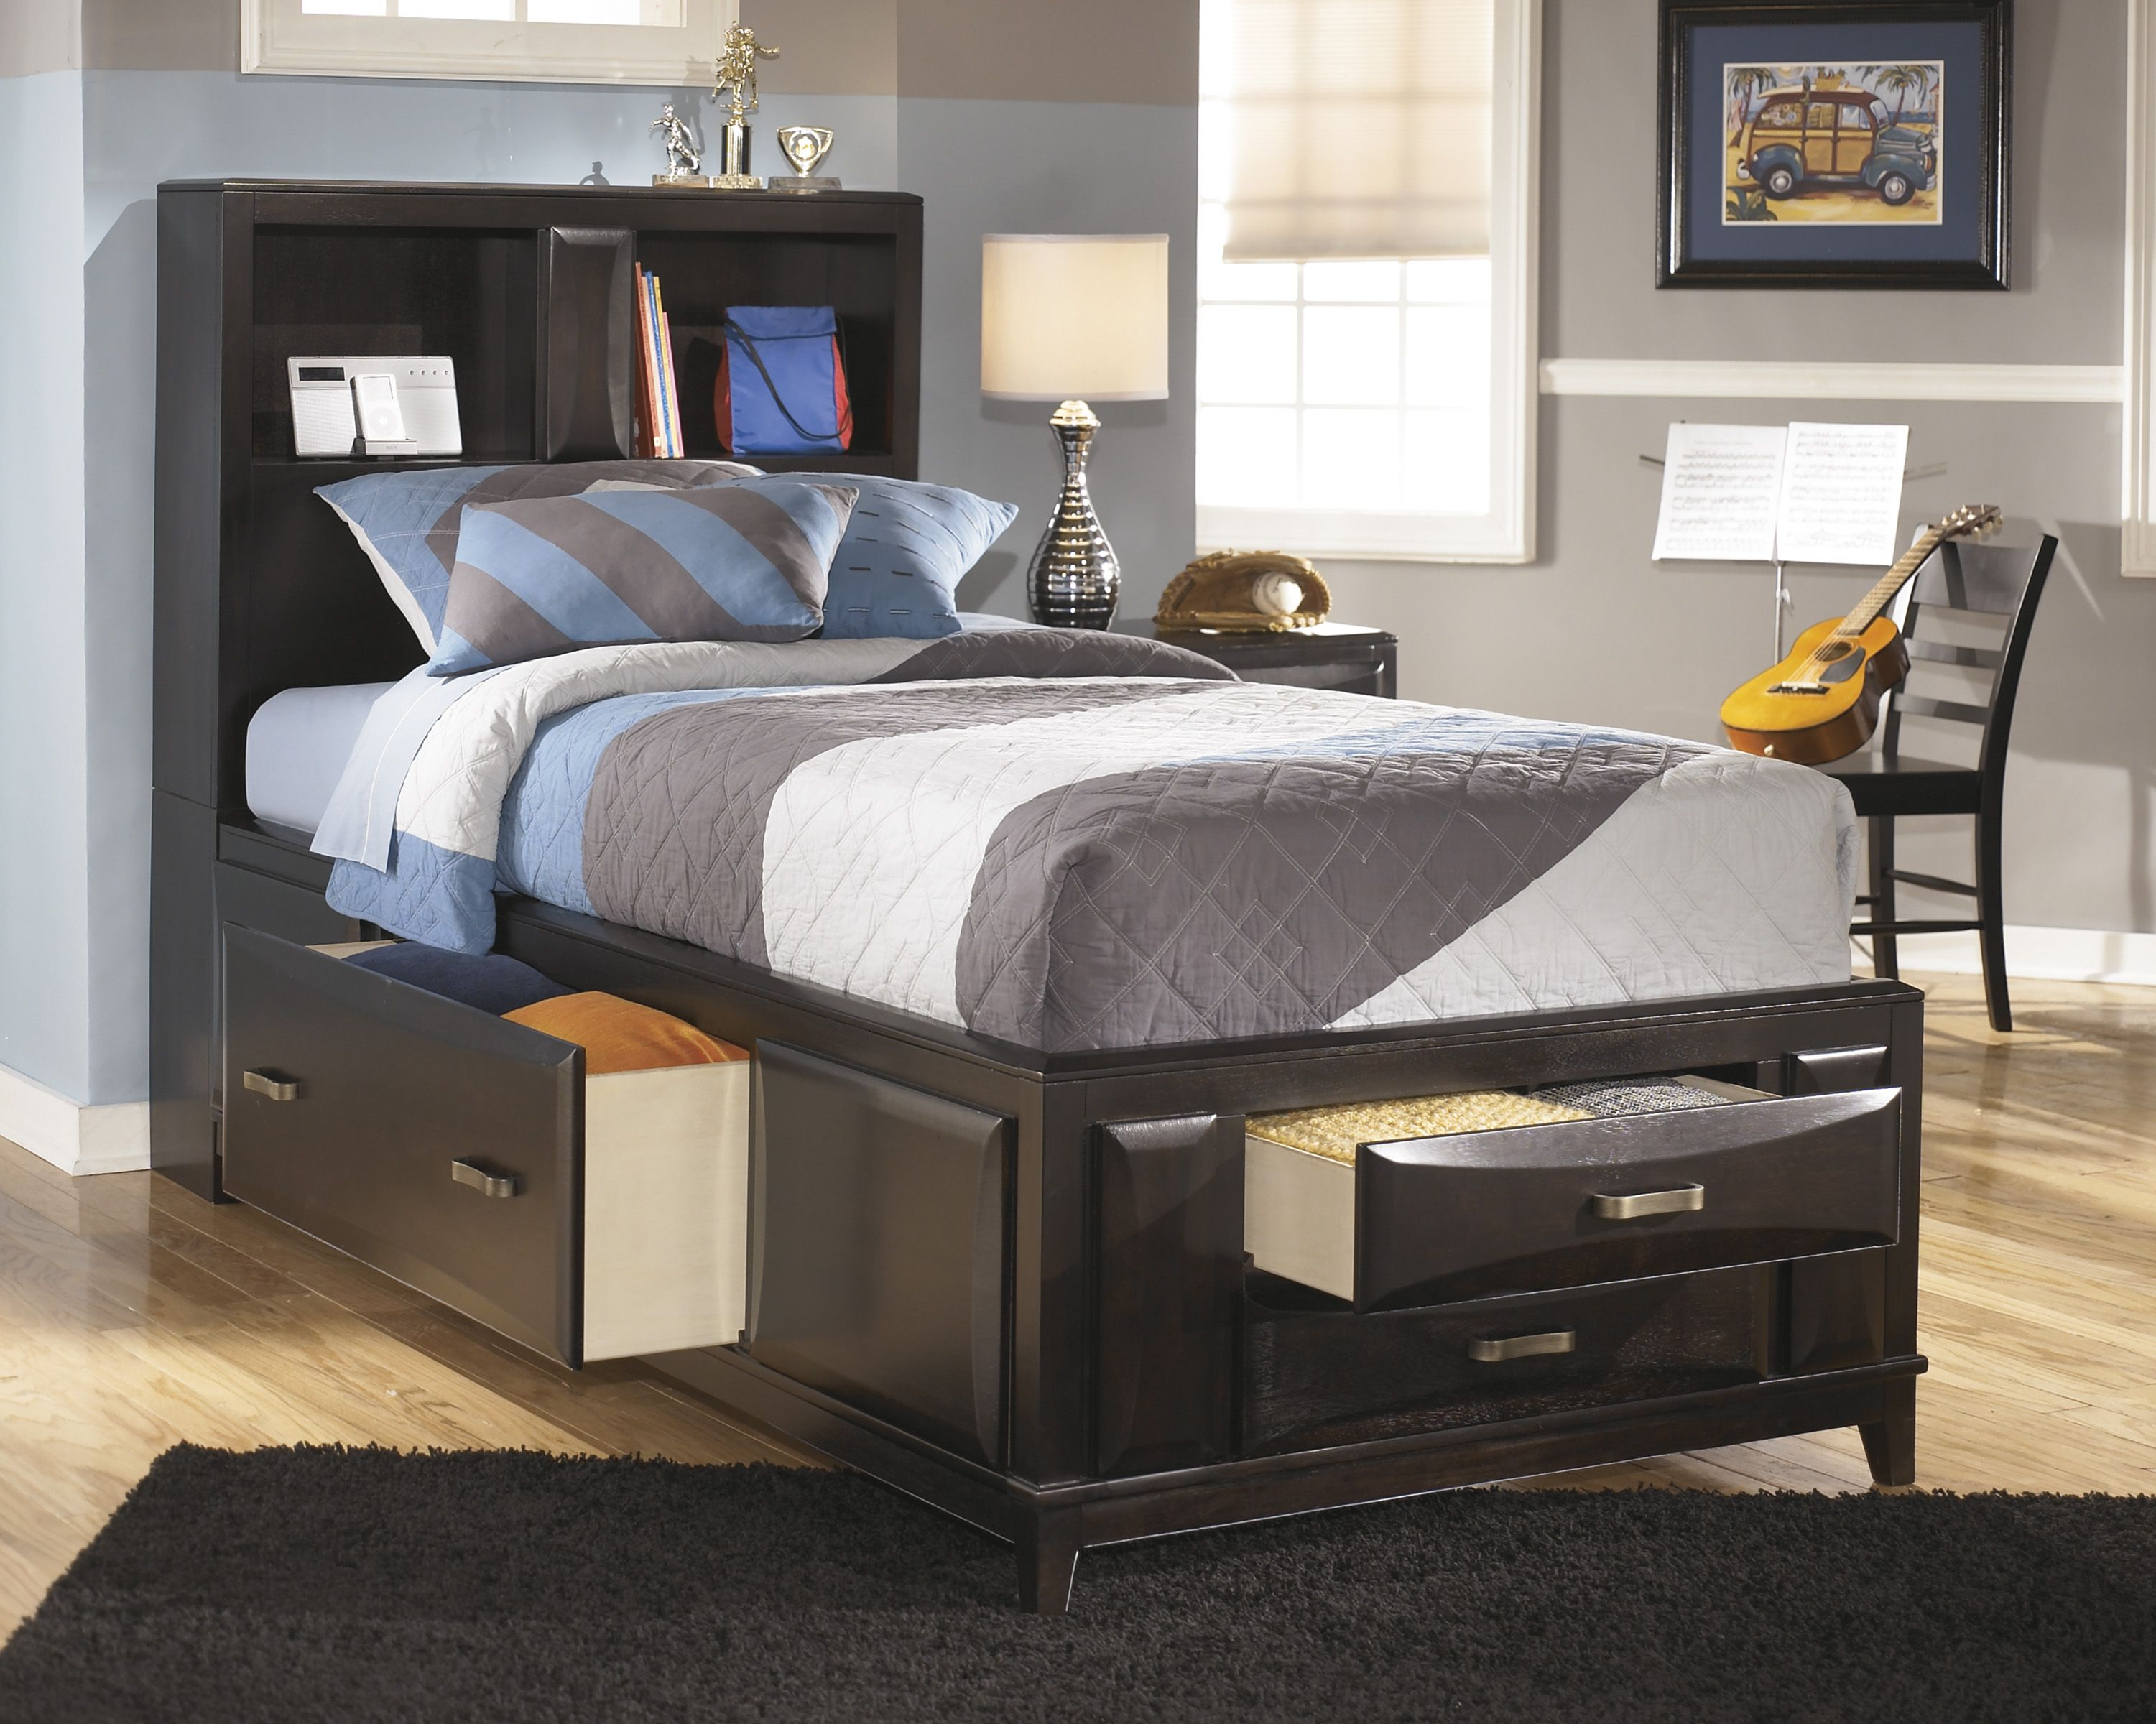 Kira collection by Ashley | Bedroom | Twin storage bed, Bedroom ...